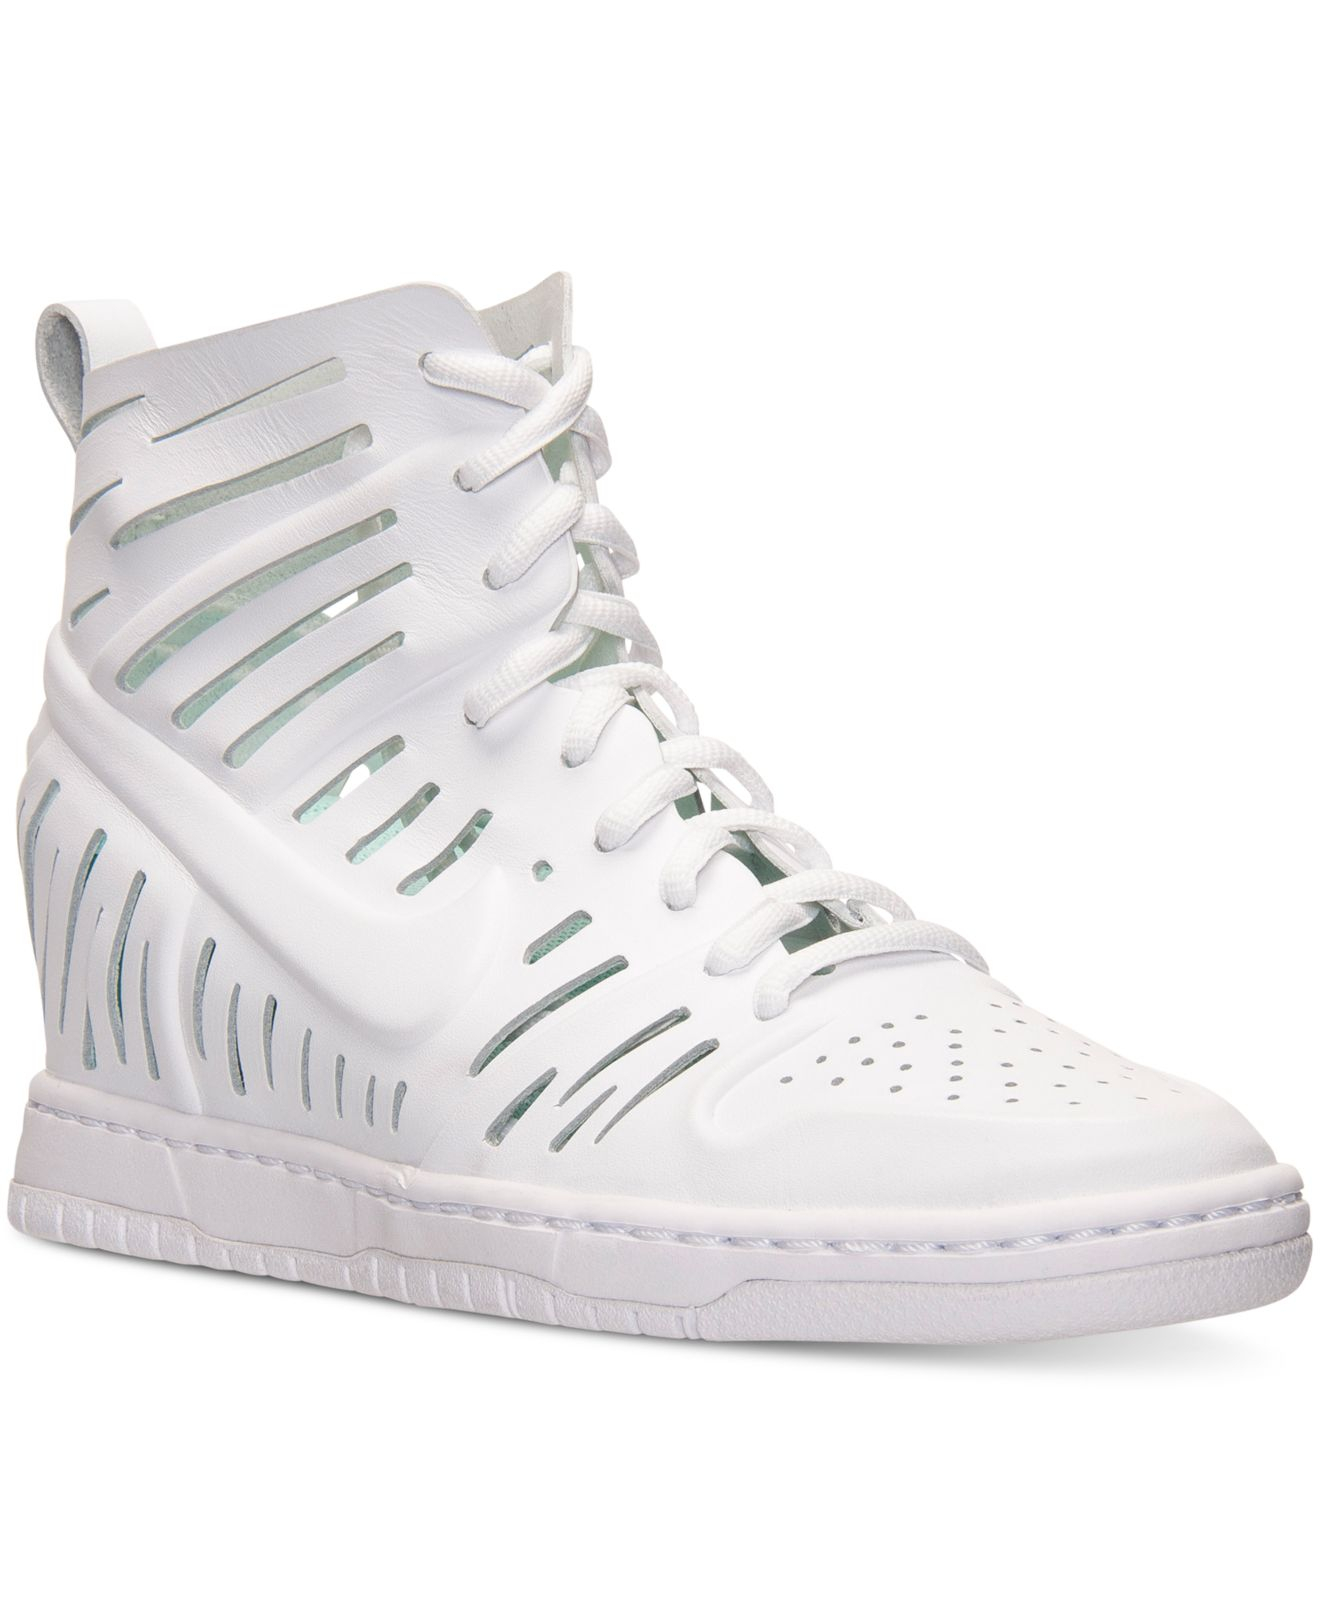 purchase cheap 908bf 122f9 Previously sold at Macy s · Women s Nike Dunk Women s Nike Dunk  Free  shipping and returns on Nike Dunk Sky Hi Wedge Sneaker ...